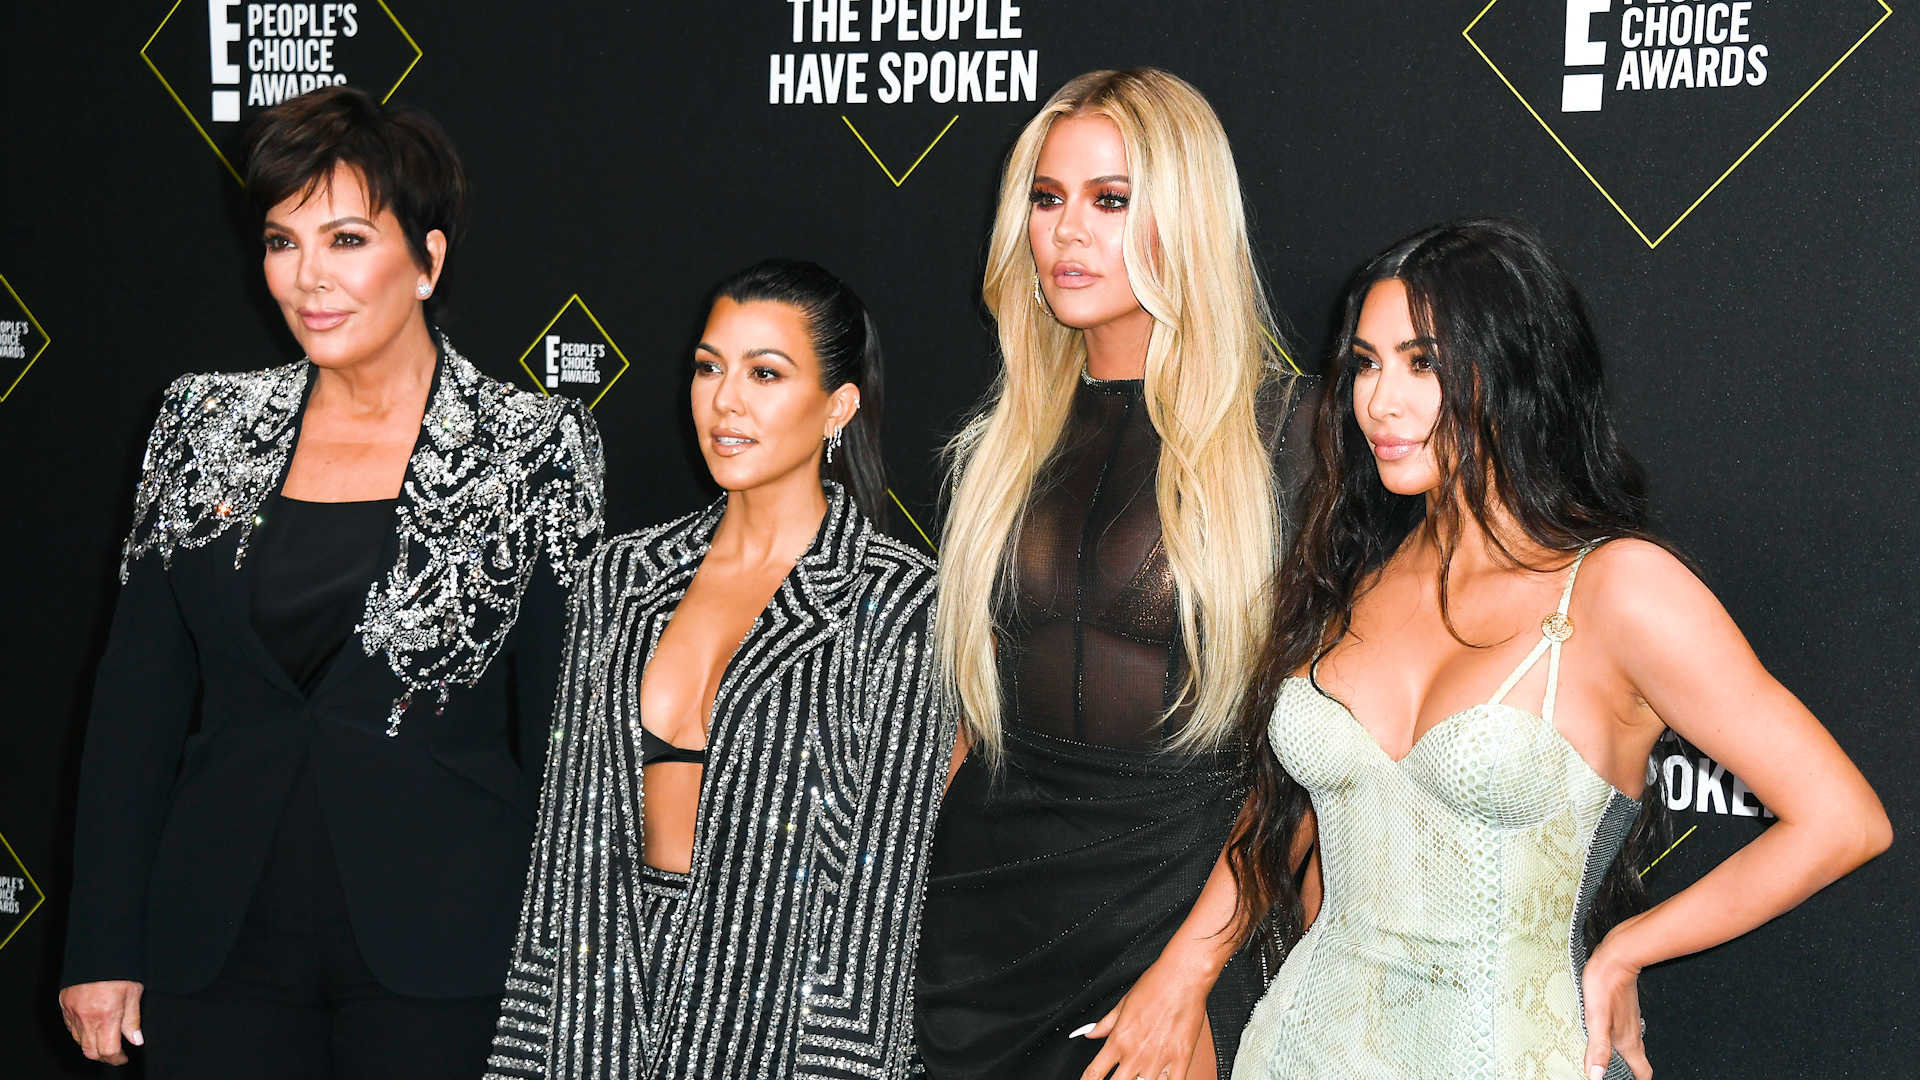 Kim and Khloé want Kourtney fired from 'Keeping Up With the Kardashians'